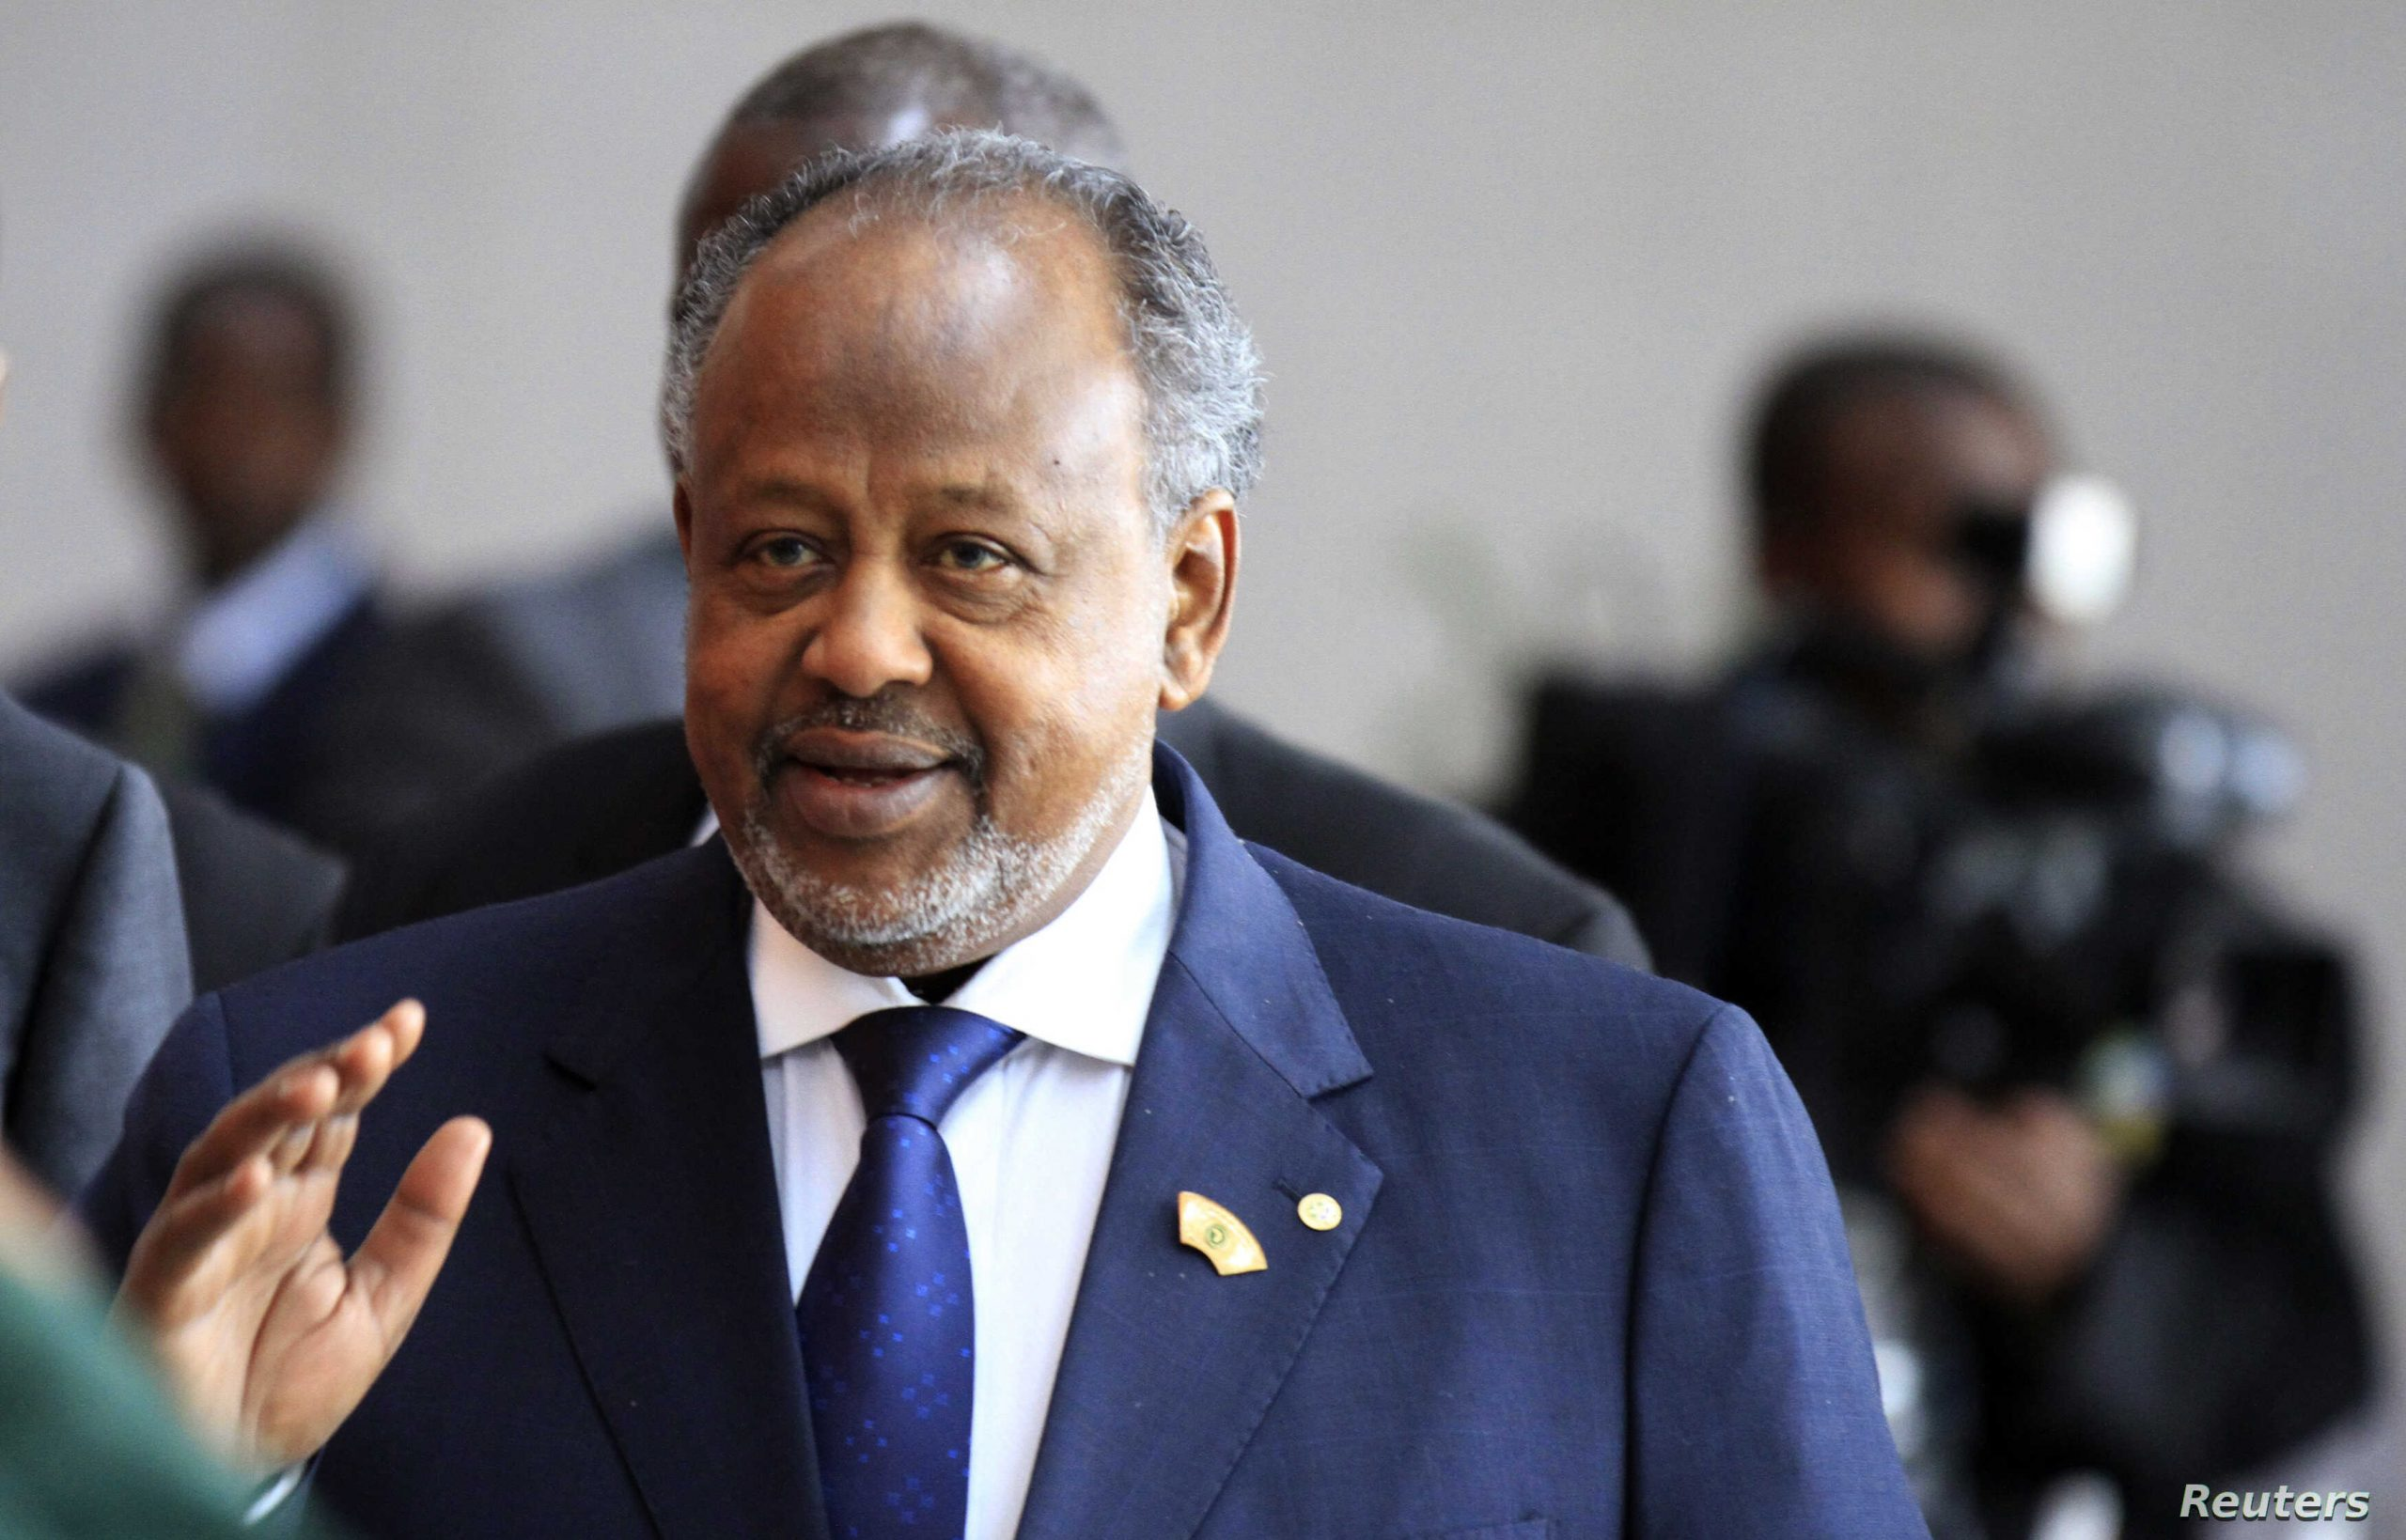 Djibouti's President Guelleh arrives for a meeting in Addis Ababa